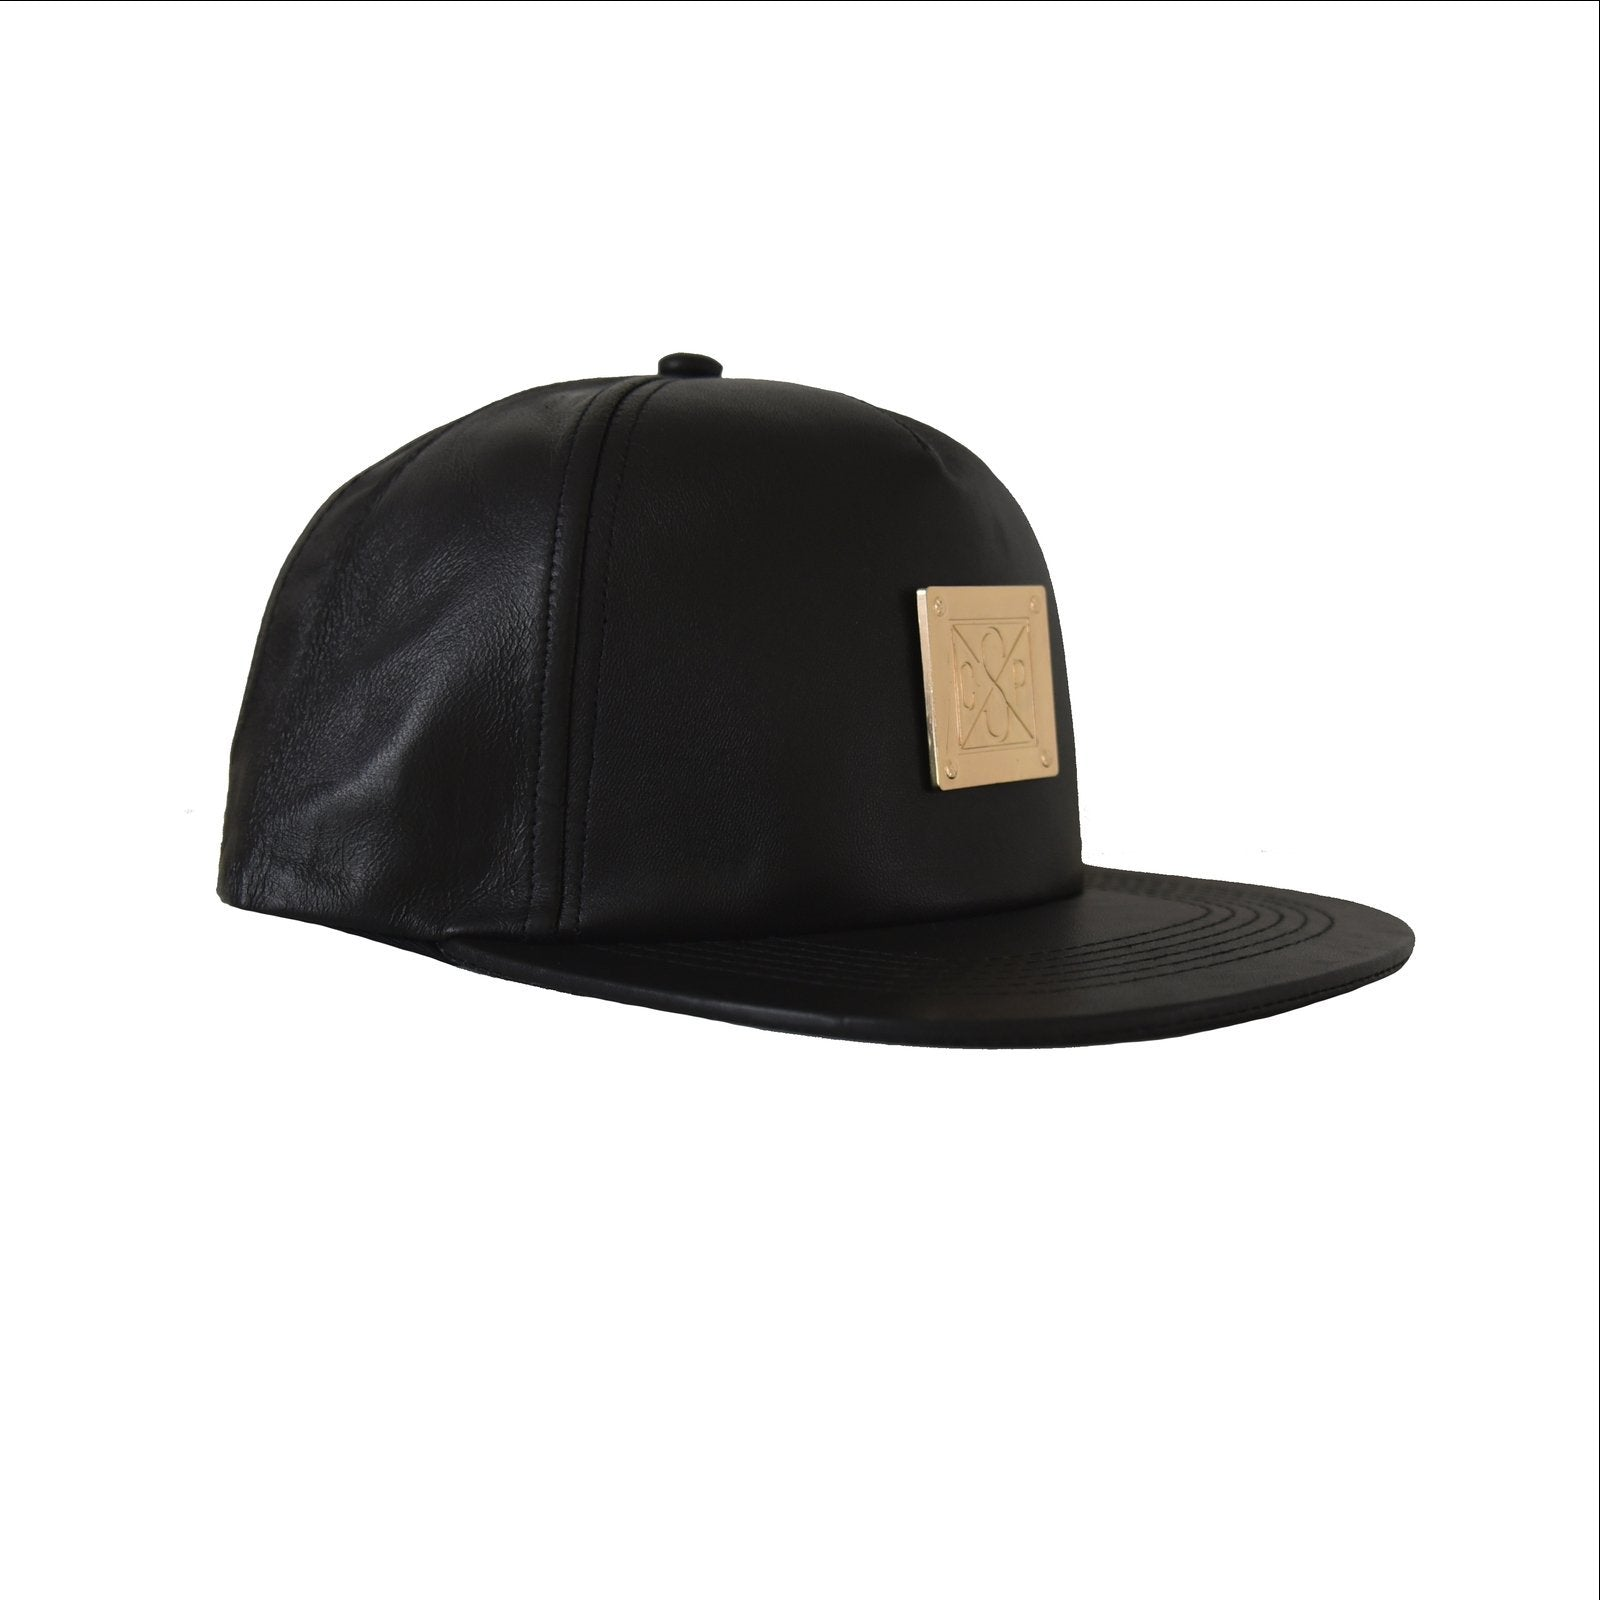 Snapback black leather